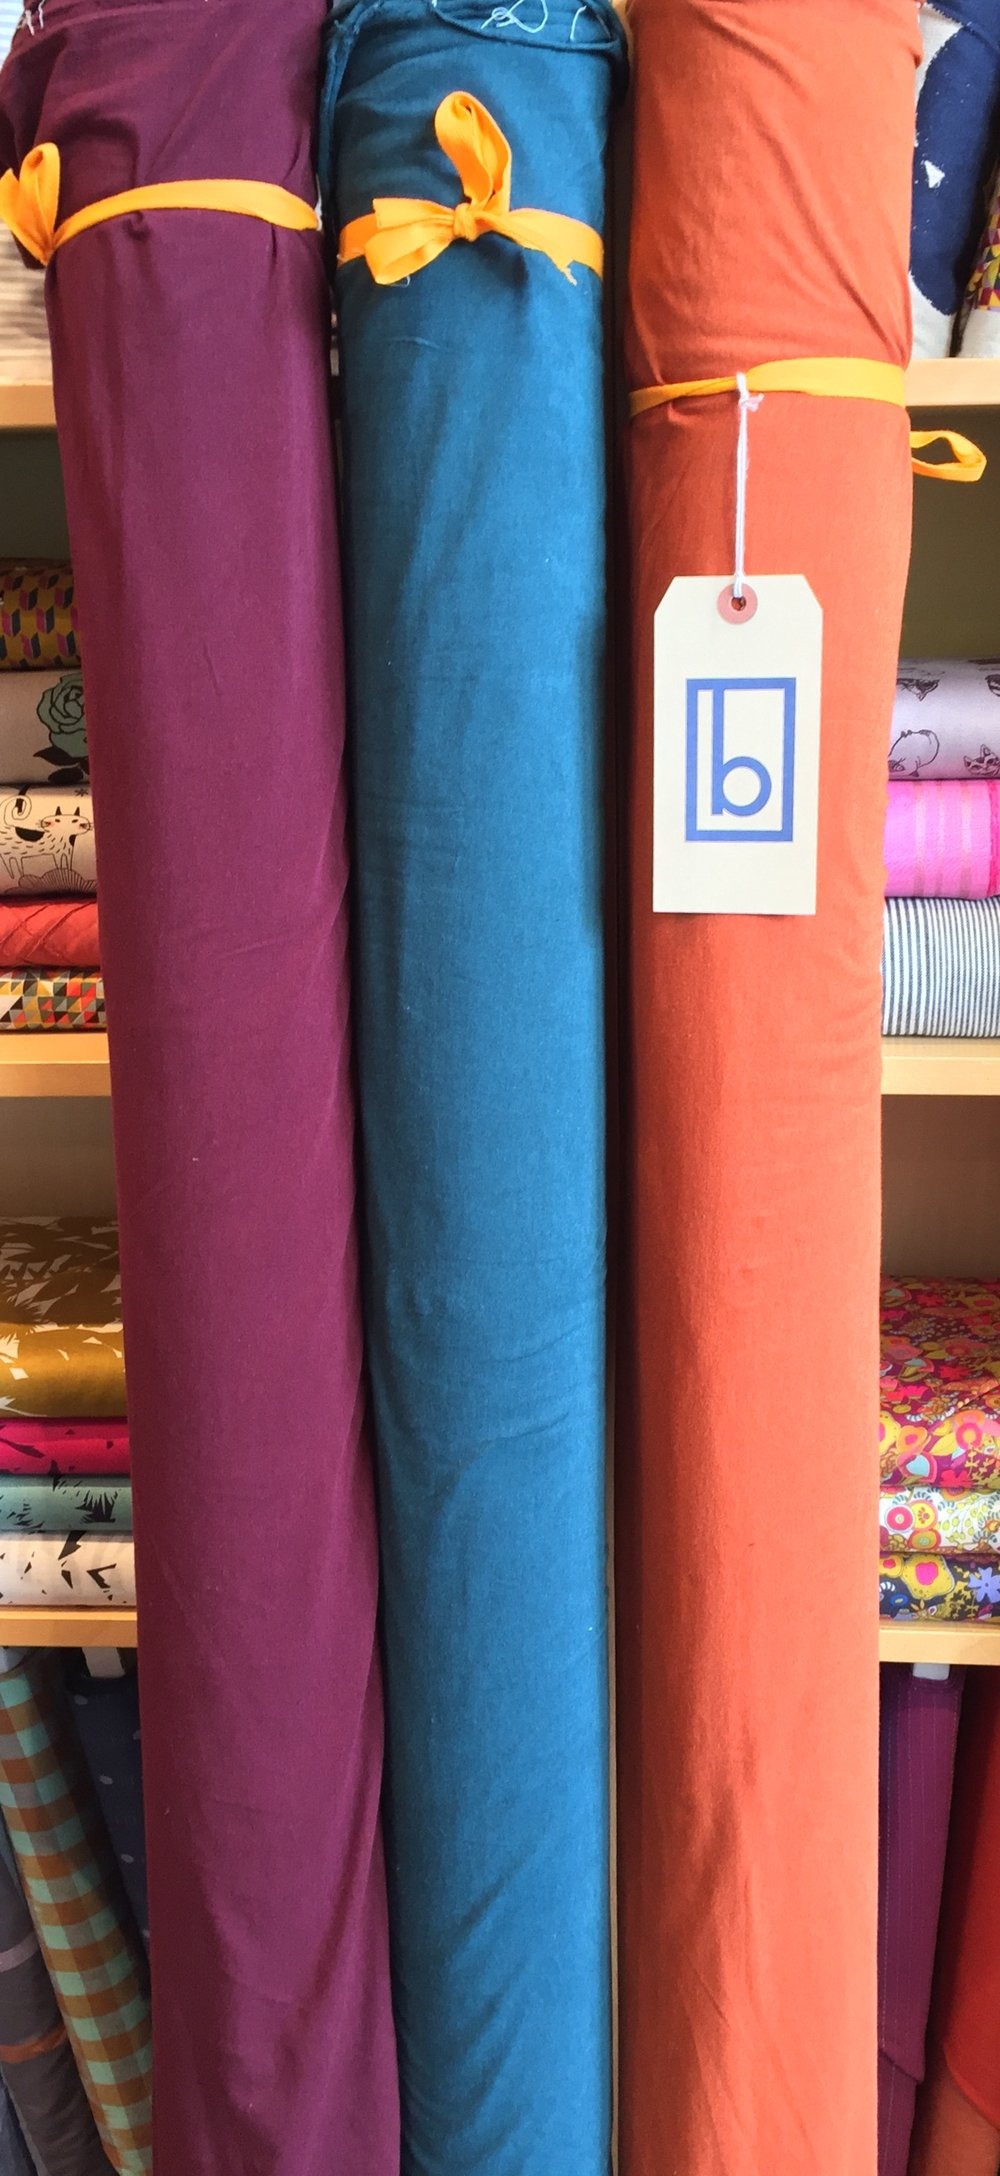 Bamboo, organic cotton and spandex